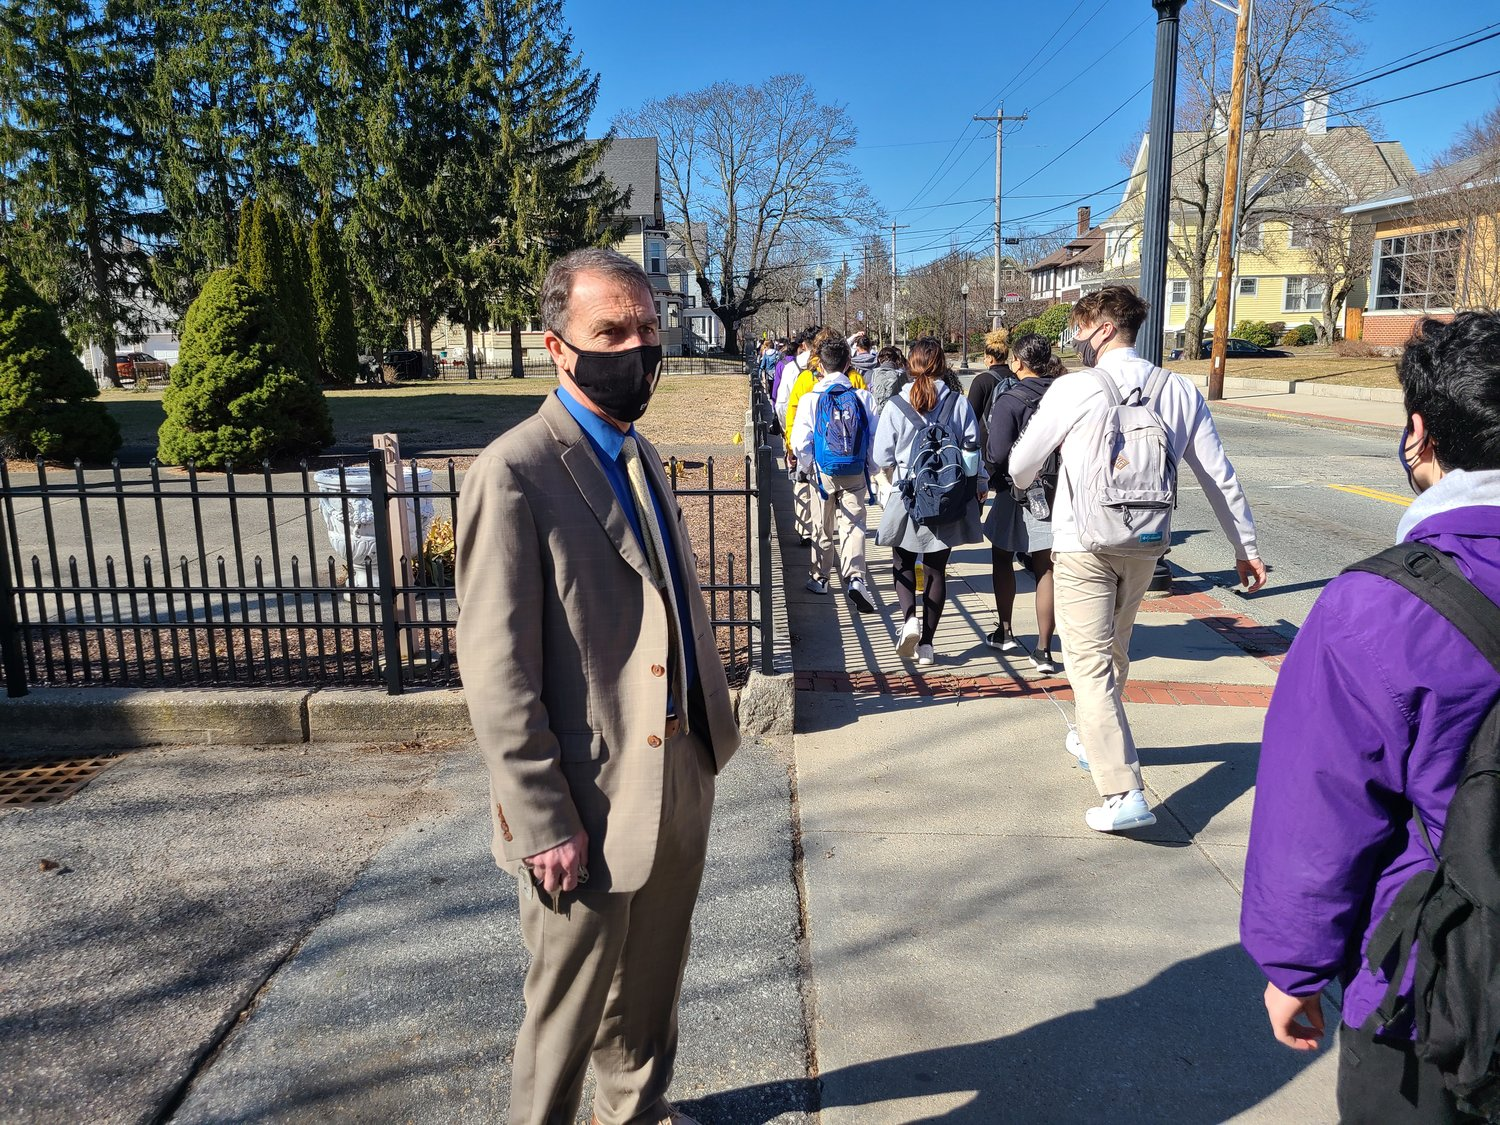 St. Raphael Principal Daniel Richard greets students as they walk outside on their way to class.